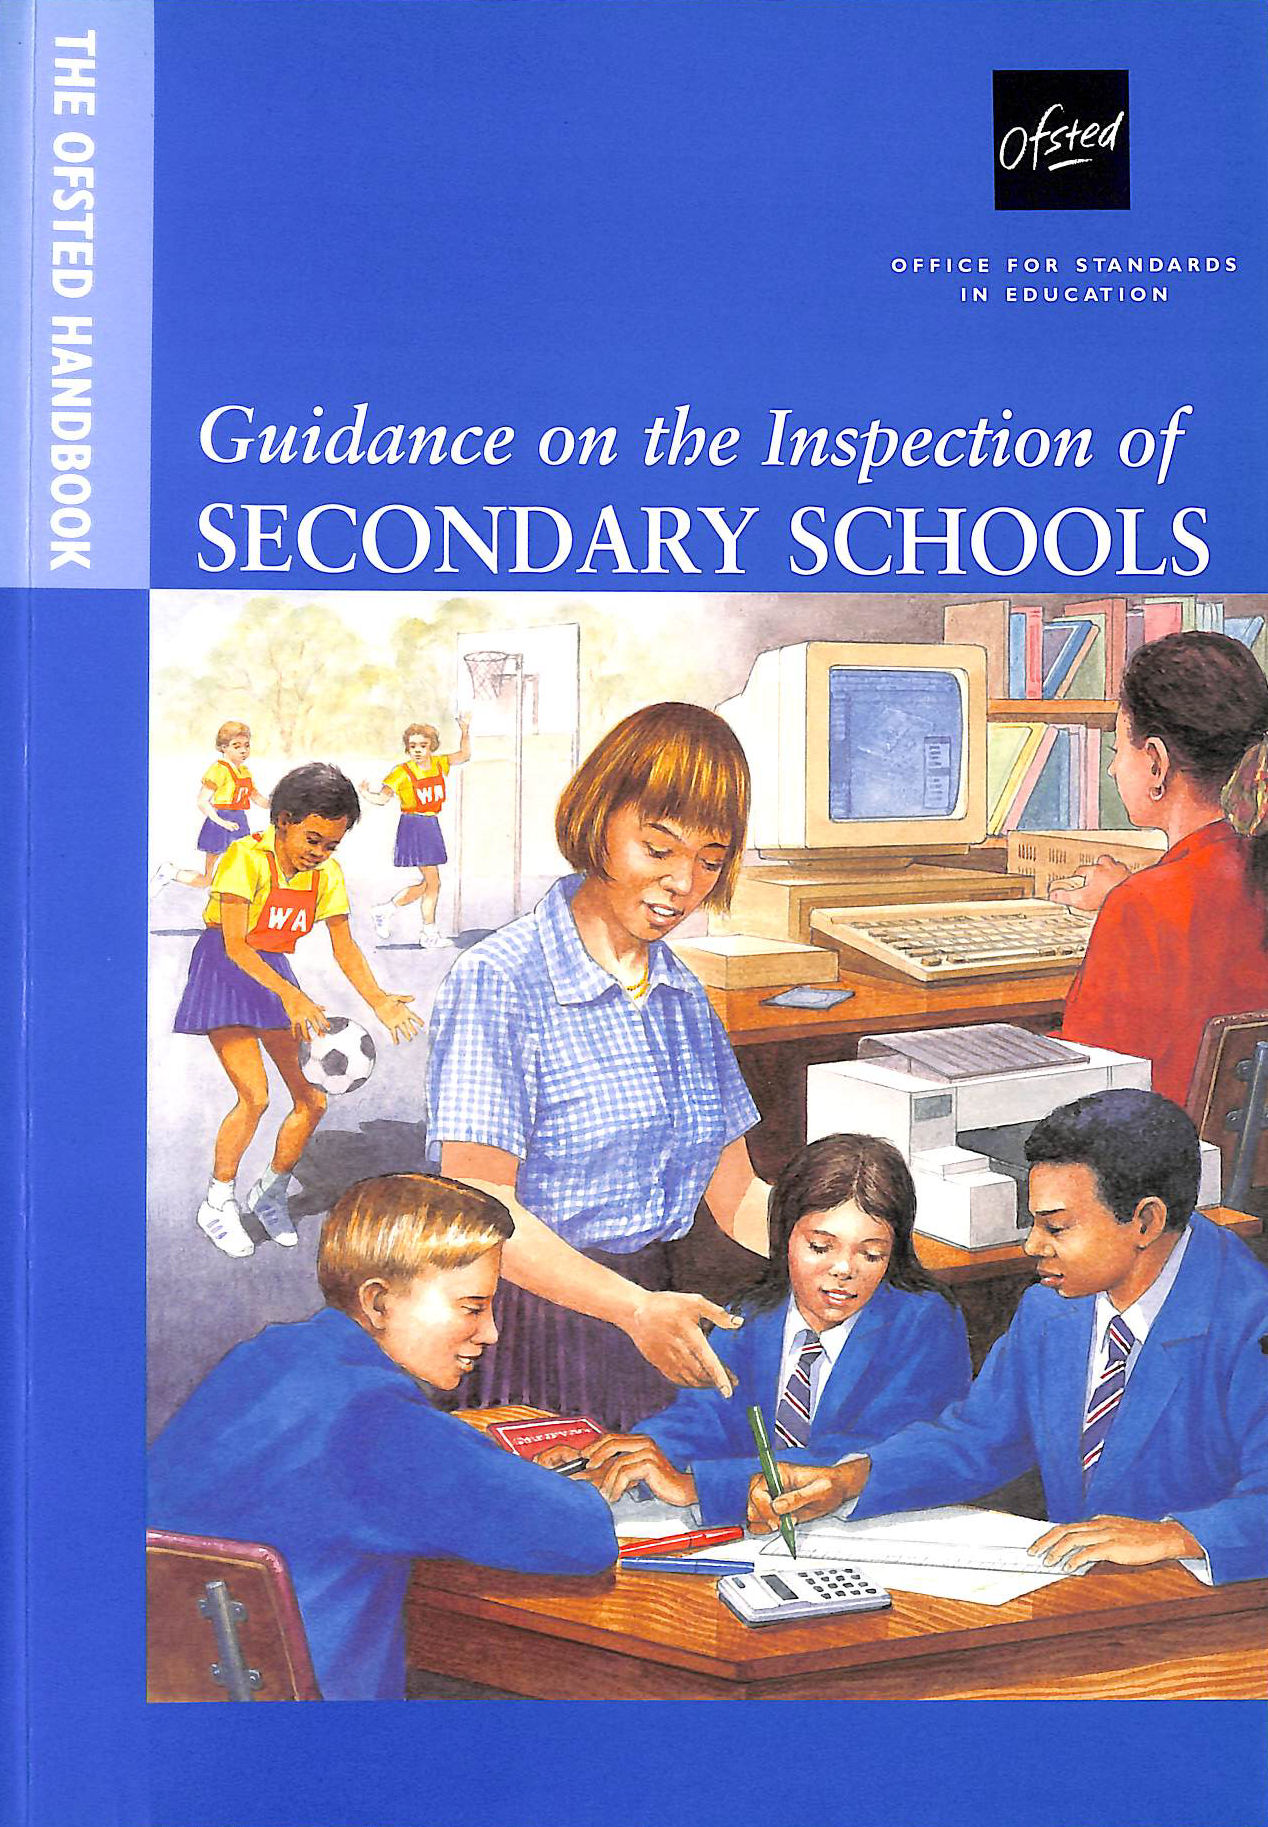 Image for The Ofsted Handbook: Guidance On The Inspection Of Secondary Schools